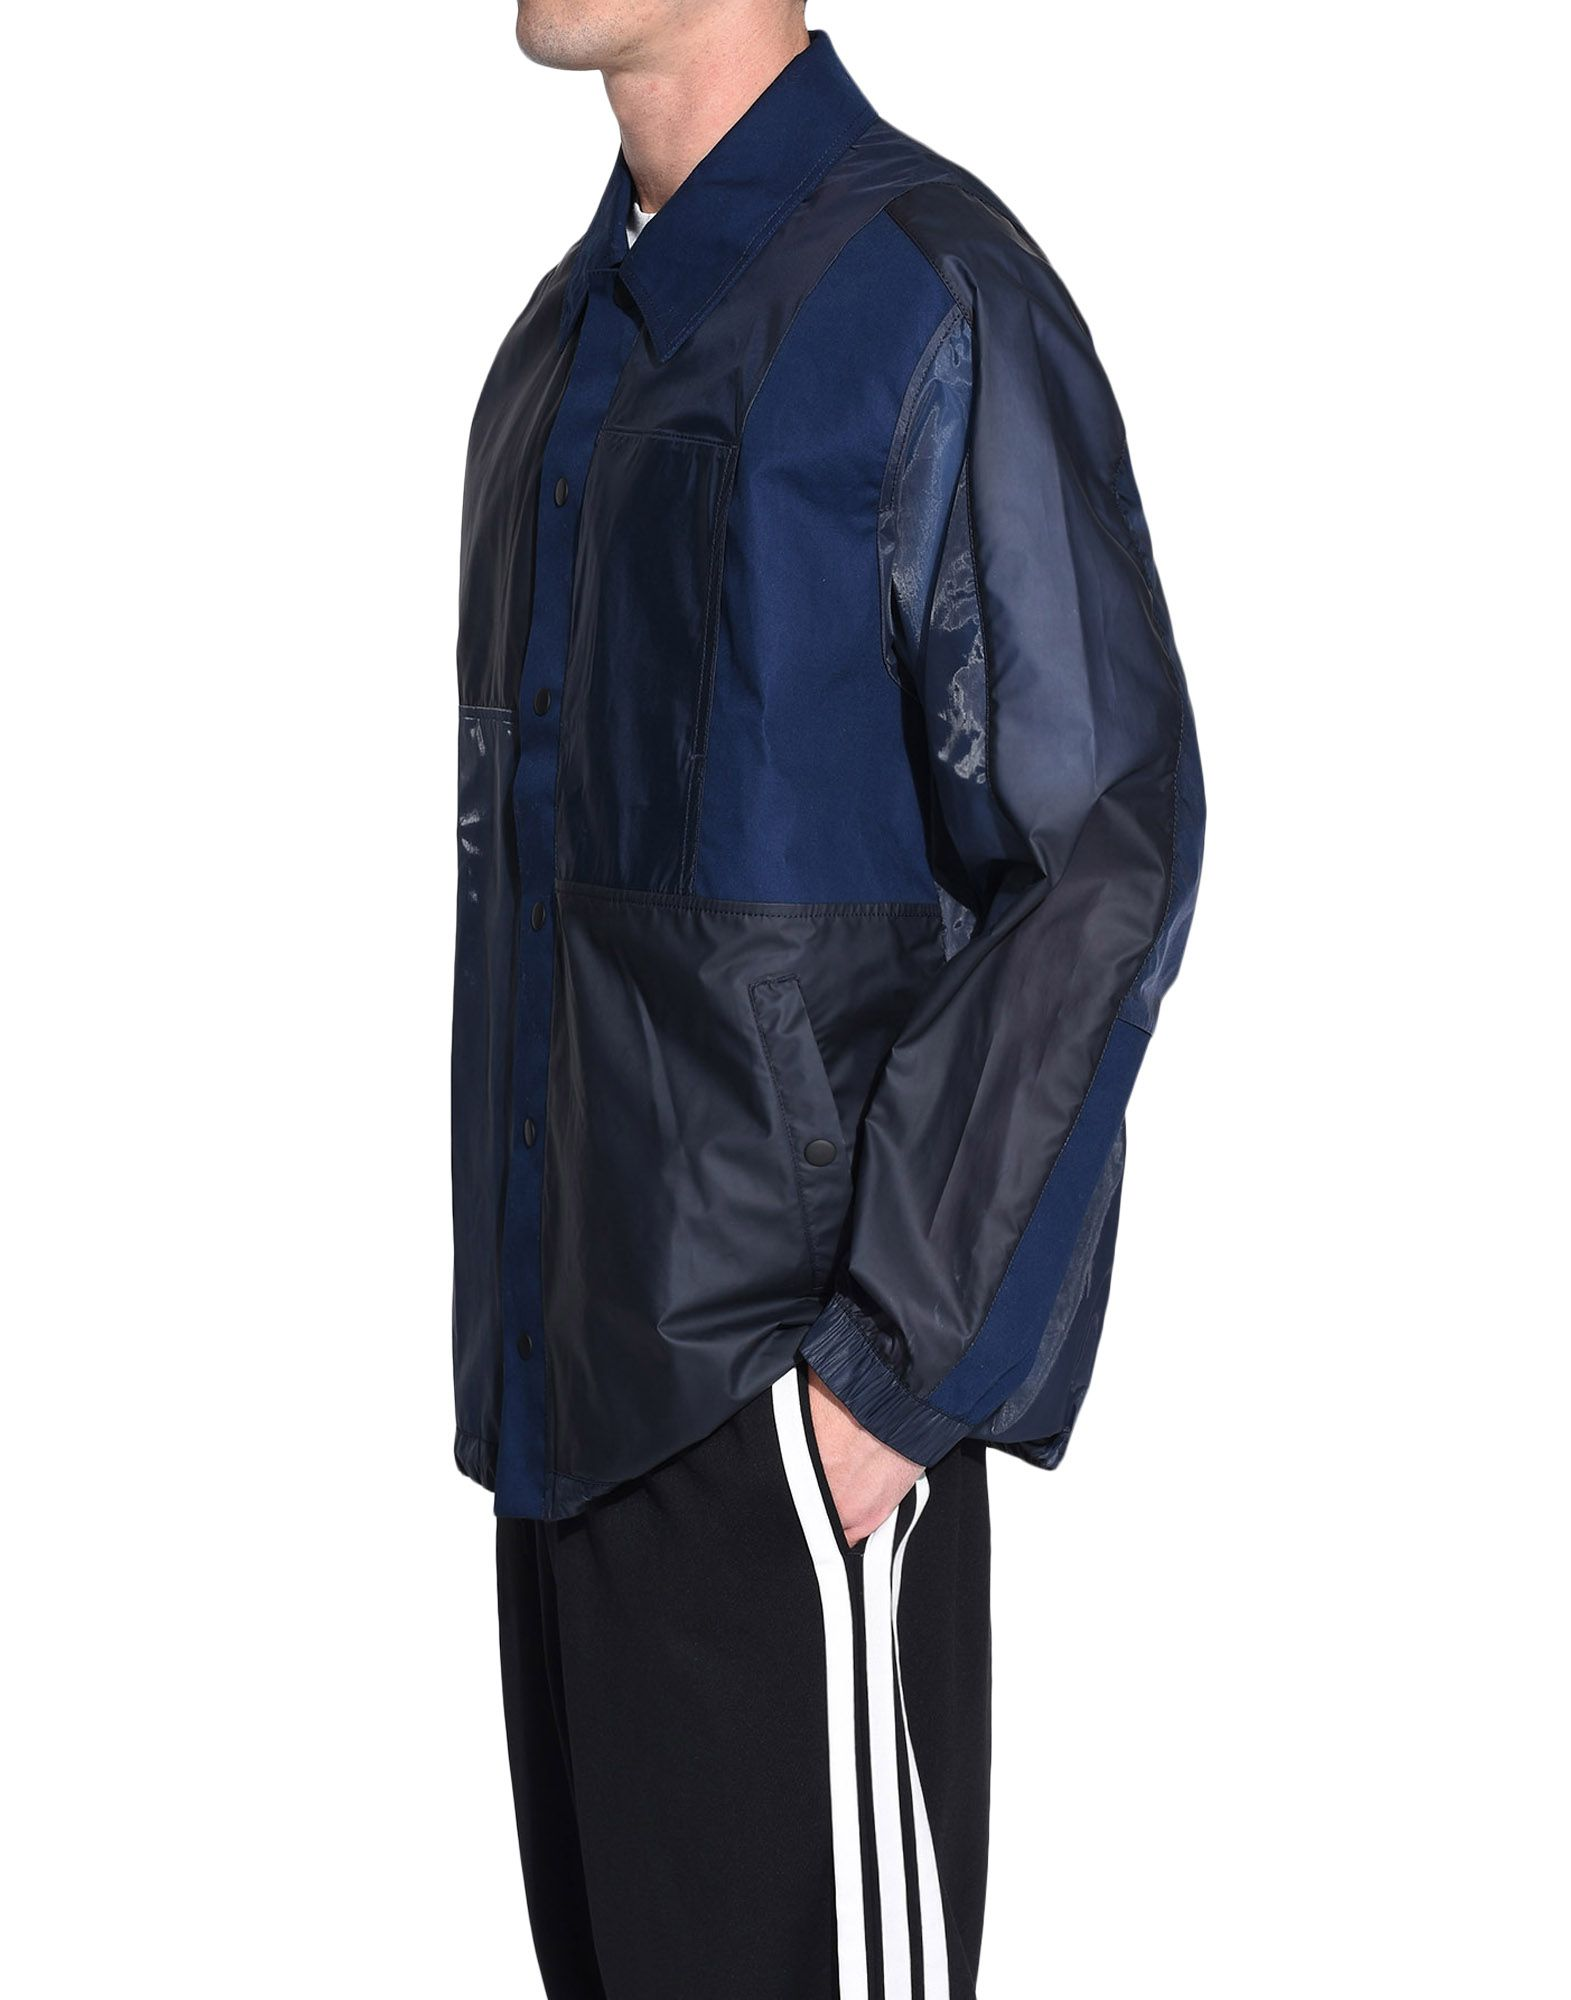 Y-3 Y-3 Patchwork Coach Jacket Jacket Man e